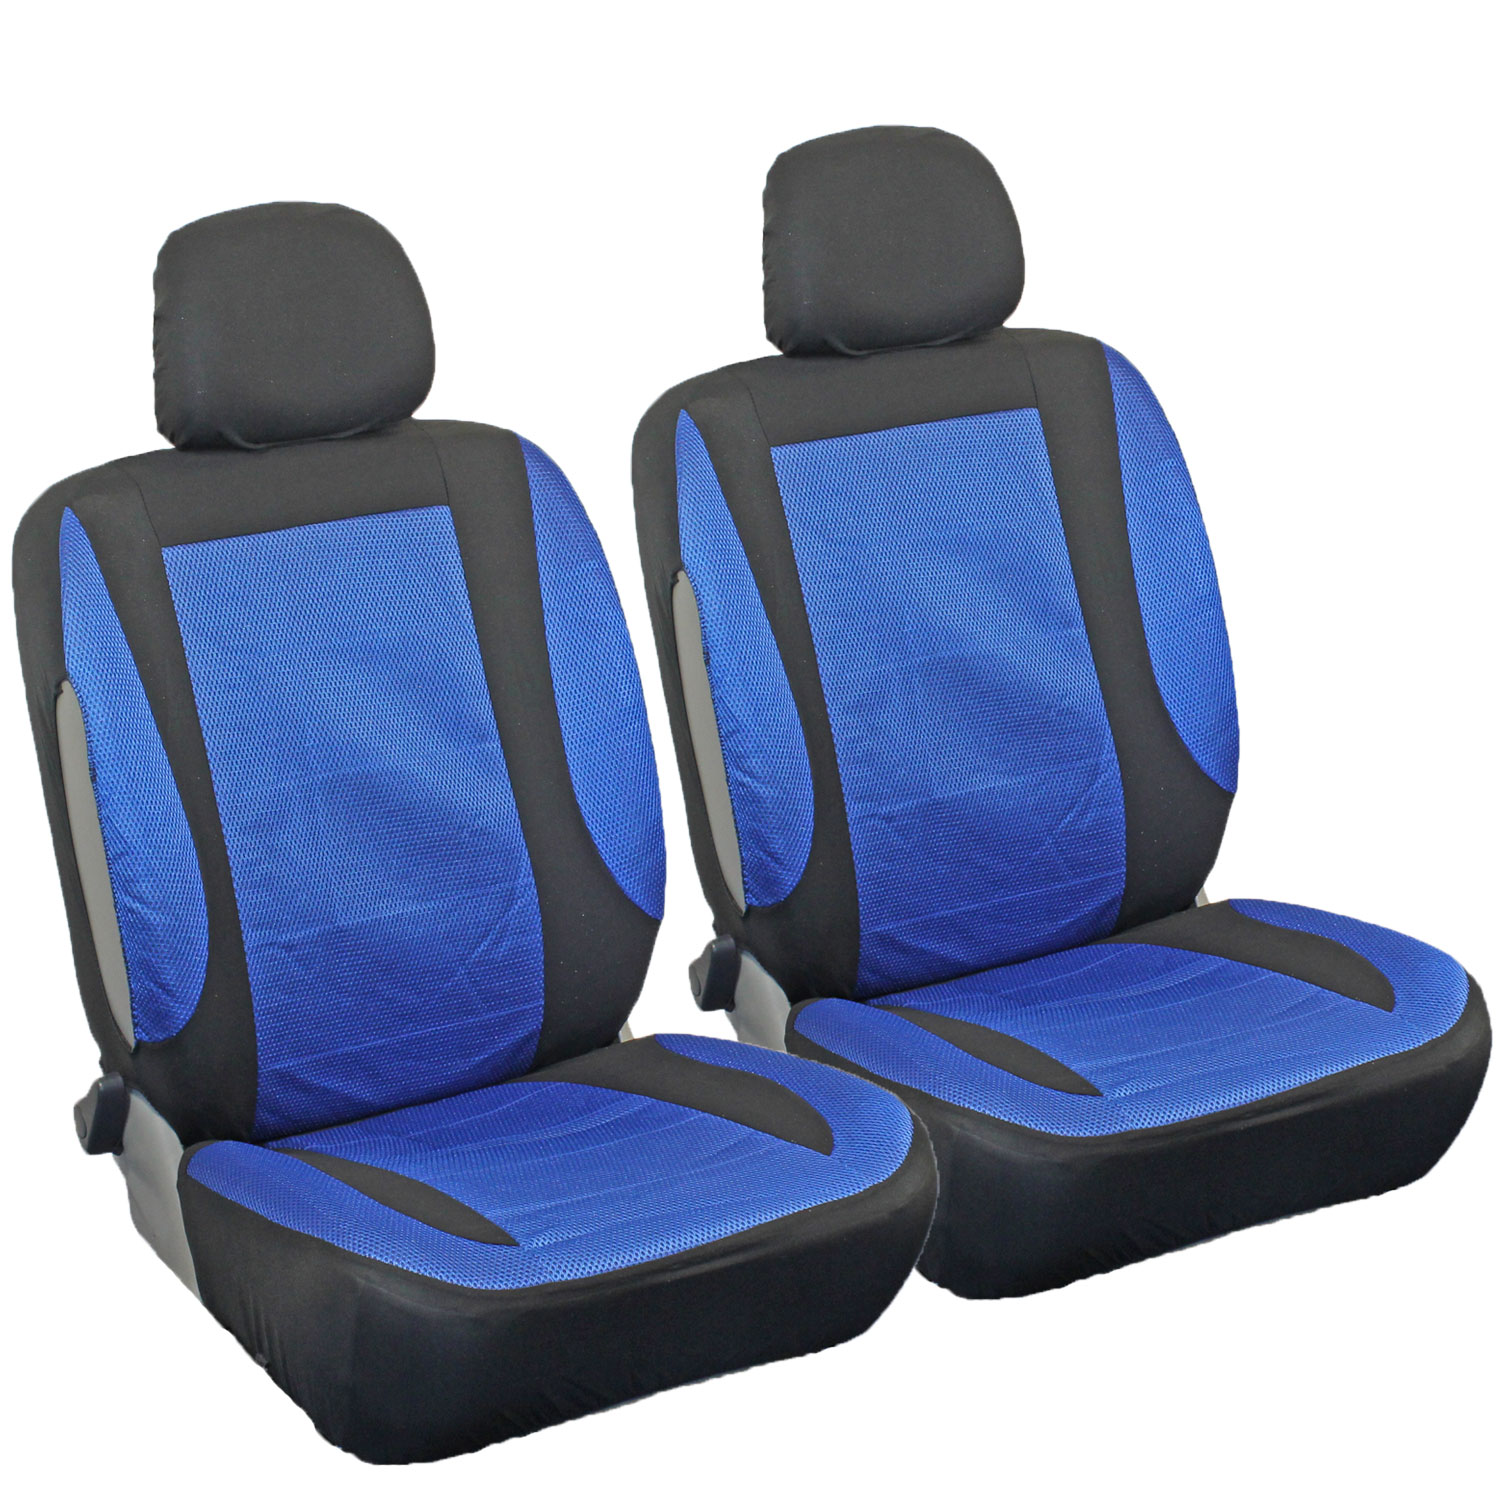 new stretch fit mesh car seat covers blue and black universal fit protective ebay. Black Bedroom Furniture Sets. Home Design Ideas